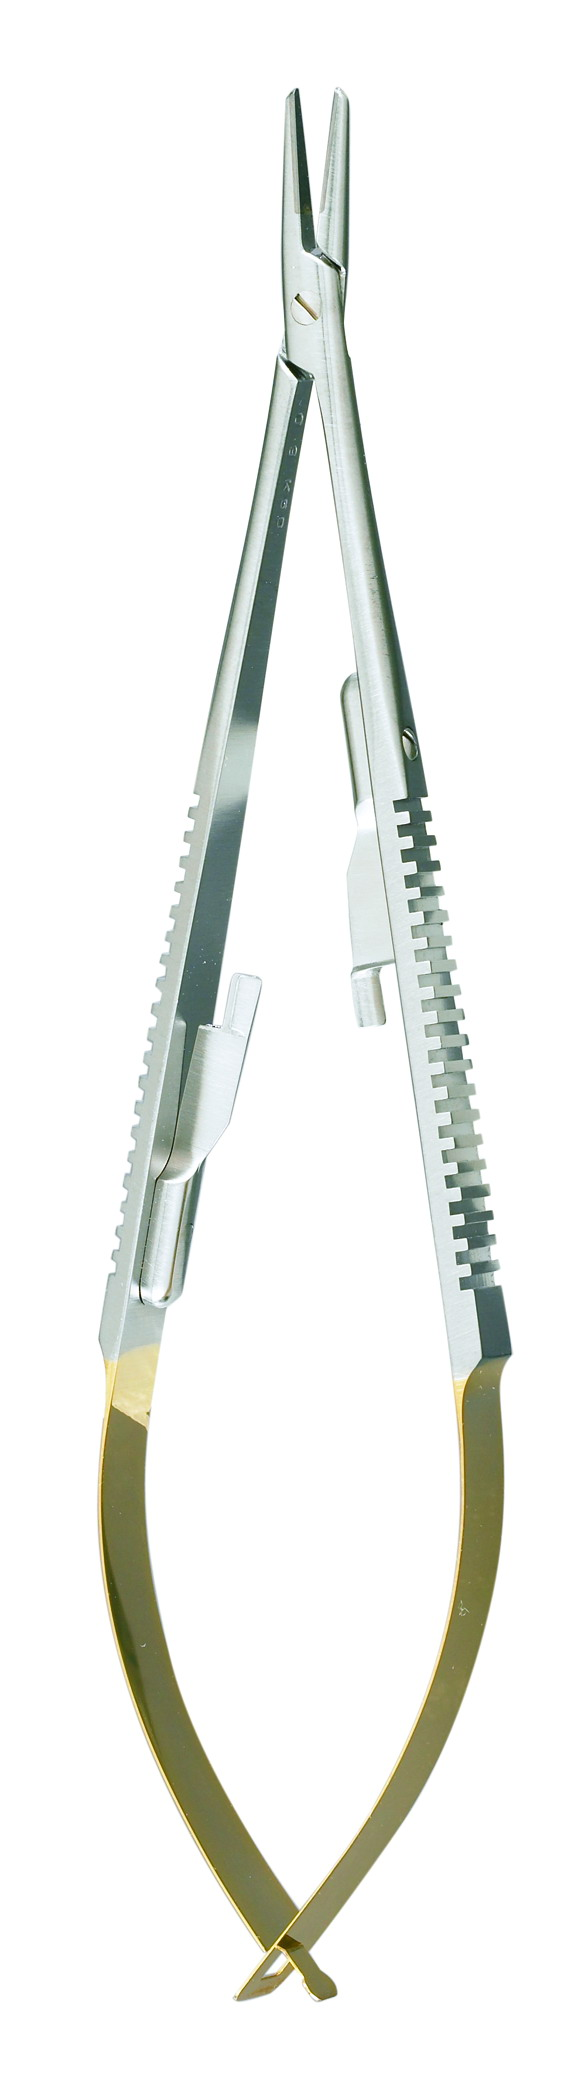 castroviejo-needle-holder-5-1-2-14-cm-with-smooth-jaws-staight-with-lock-18-1828tc-miltex.jpg